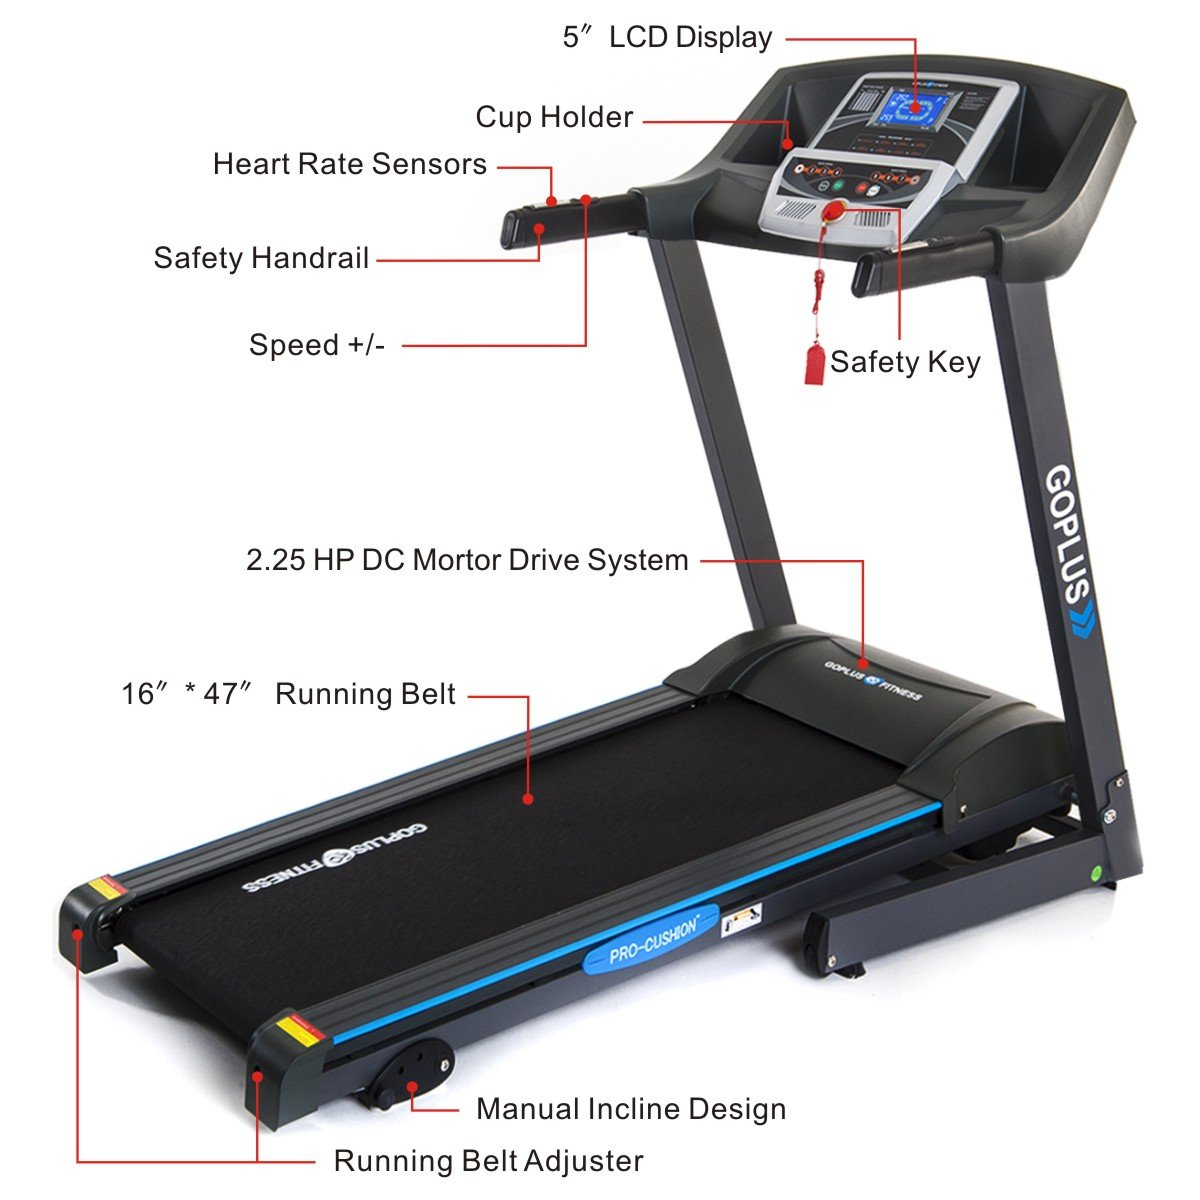 Goplus 2.25HP Folding Treadmill Electric Support Motorized Power Running Fitness Jogging Incline Machine g Fitness Jogging Incline Machine Fitness Jogging Incline Machine Black Jaguar Ⅱ(Classic) by Goplus (Image #3)